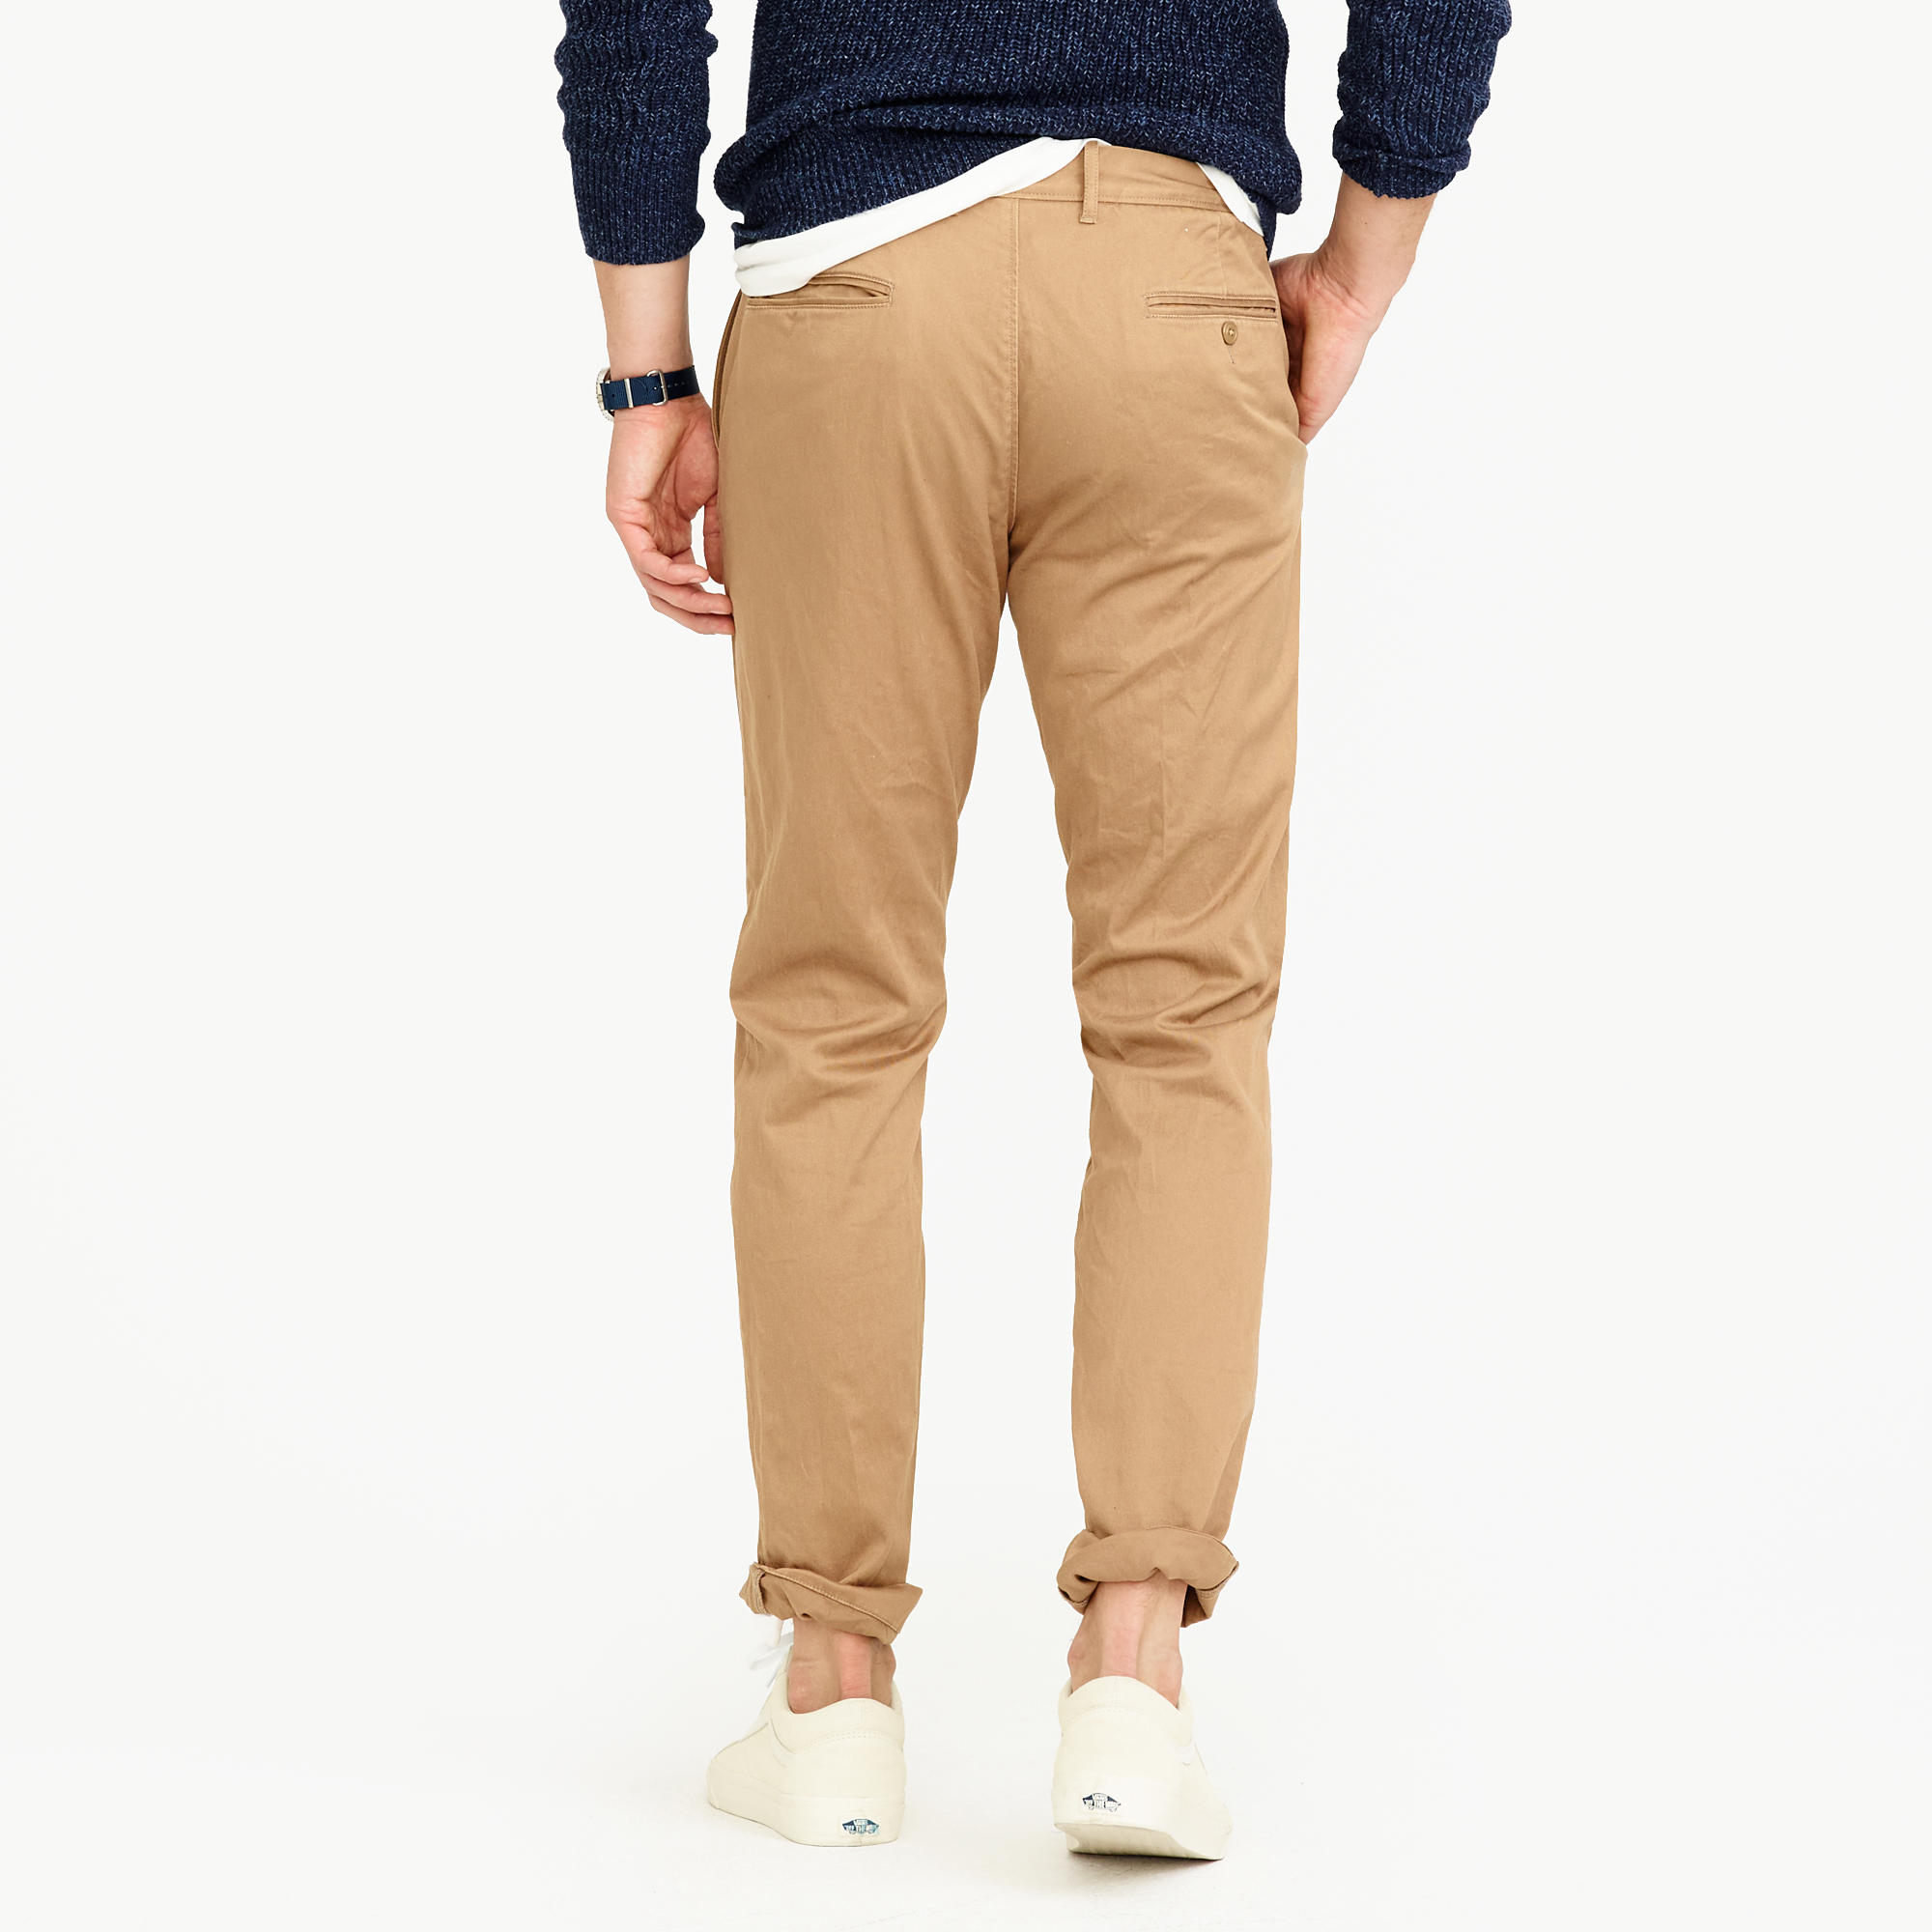 Mens Pleated Chino Pants